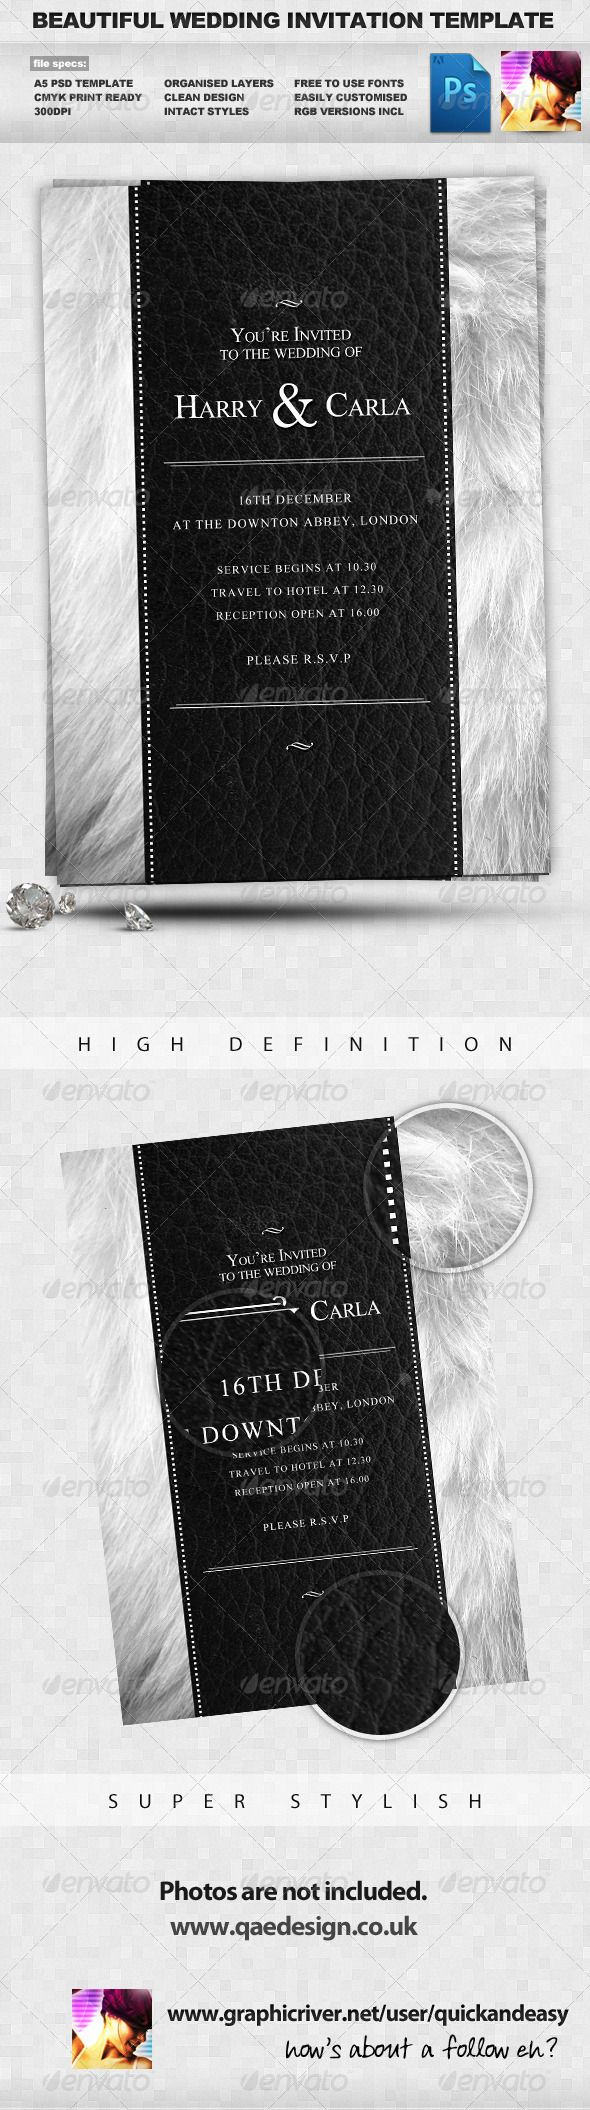 free wedding invitation psd%0A Wedding Invite Template